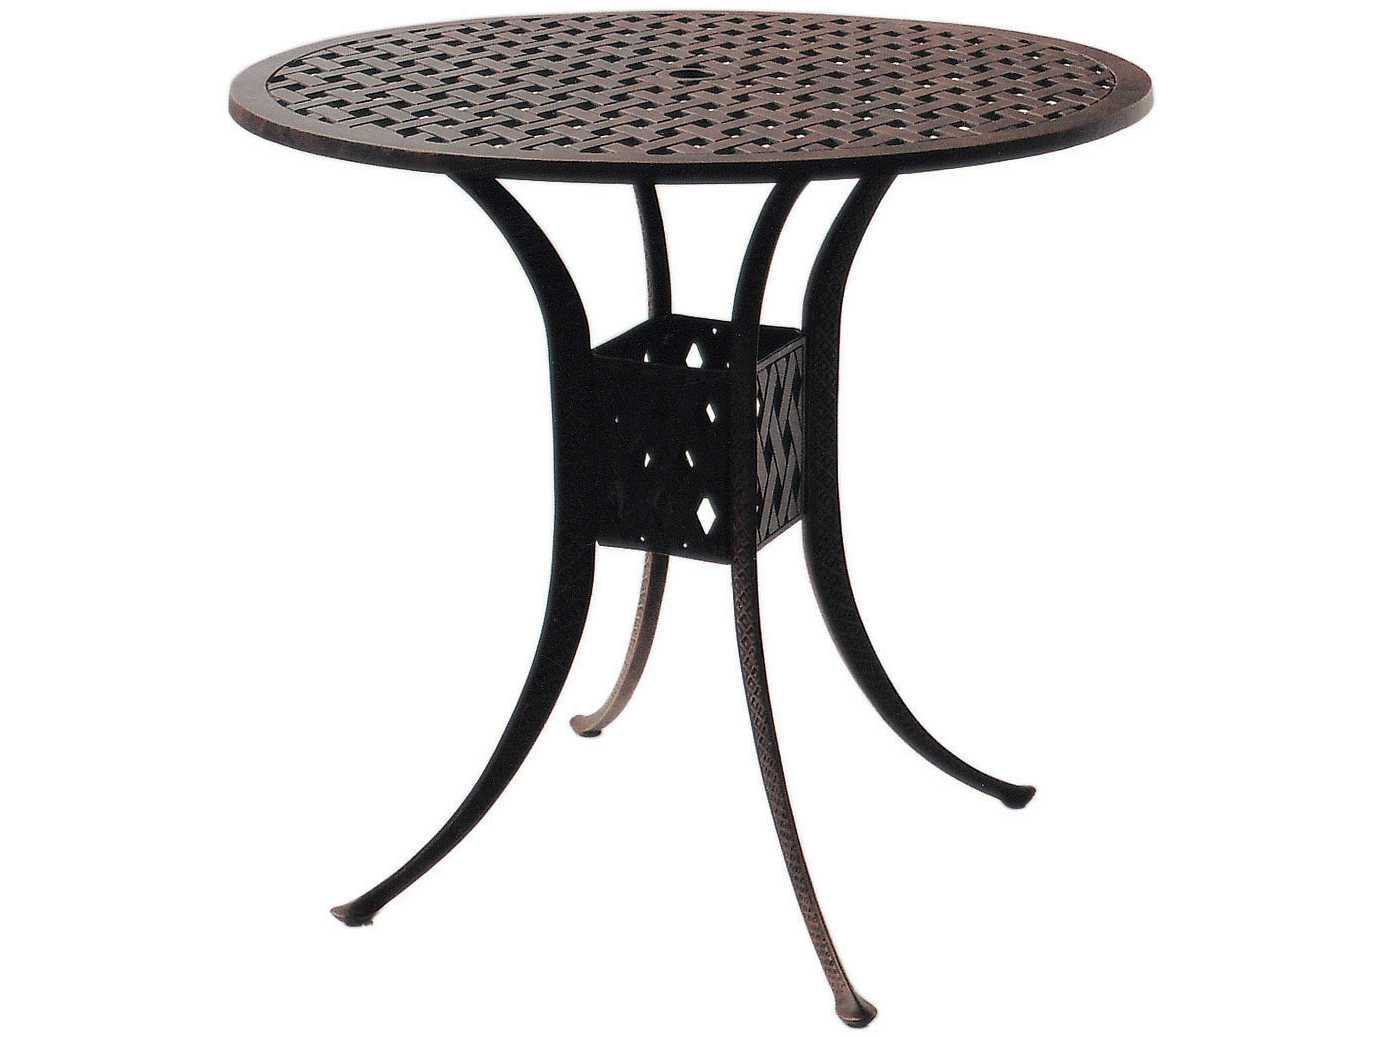 darlee outdoor living series antique bronze cast aluminum round accent table bar furniture cushions monarch hall console dark taupe elm wood coffee dining chairs vintage metal